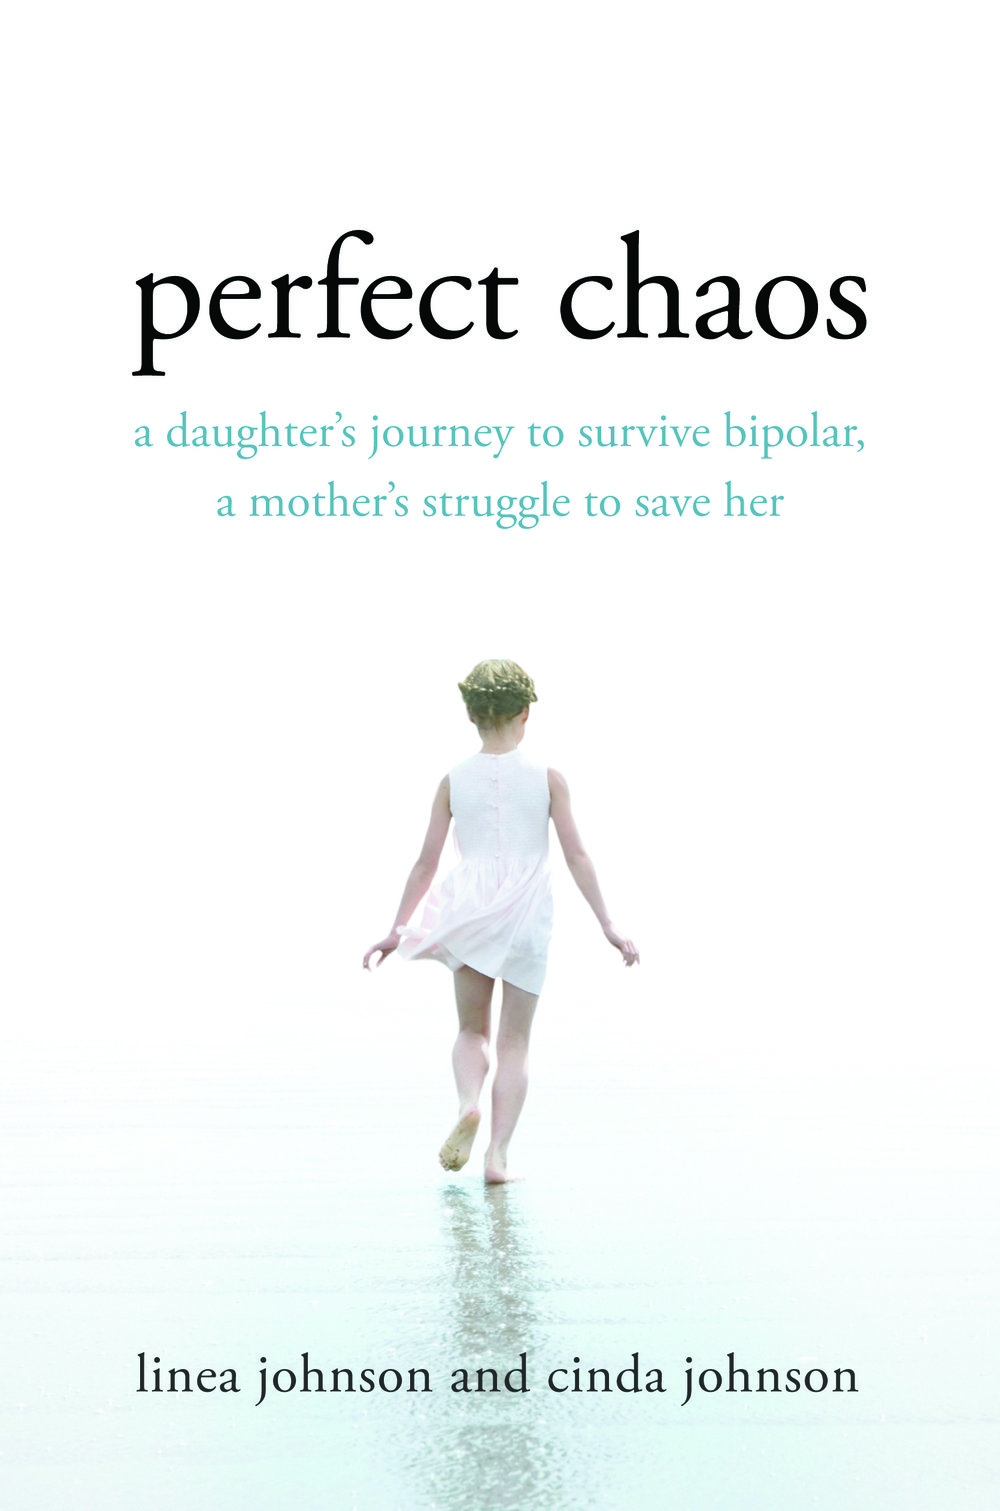 Perfect Chaos - The Johnsons were a close and loving family living in the Seattle area - two parents, two incomes, two bright and accomplished daughters. They led busy lives filled with music lessons, college preparation, career demands, and laughter around the dinner table. Then the younger daughter, Linea, started experiencing crippling bouts of suicidal depression. Multiple trips to the psych ward resulted in a diagnosis of bipolar disorder, and it took many trial runs of drugs and ultimately electroshock therapy to bring Linea back. But her family never gave up on her. And Linea never stopped trying to find her way back to them.Perfect Chaos is the story of a mother and daughter's journey through mental illness towards hope. From initial worrying symptoms to long sleepless nights to cross-country flights and the slow understanding and rebuilding of trust, Perfect Chaos tells Linea and Cinda's harrowing and inspiring story, of an illness that they conquer together every day. It is the story of a daughter's courage, a mother's faith, and the love that carried them through the darkest times.Purchase Perfect Chaos here.